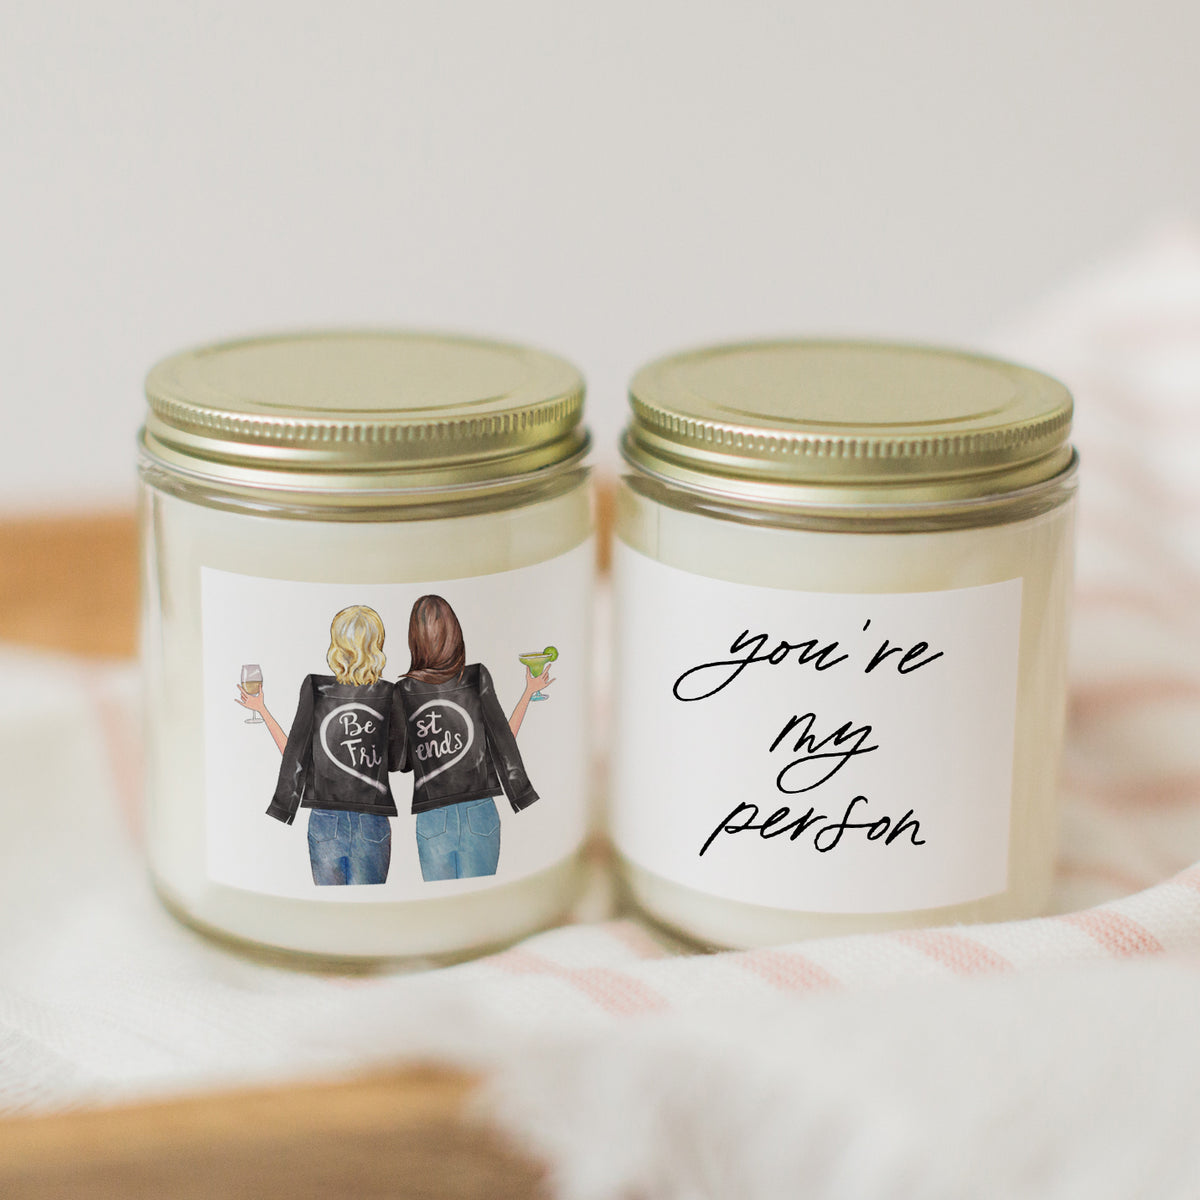 Best Friends Portrait Candle